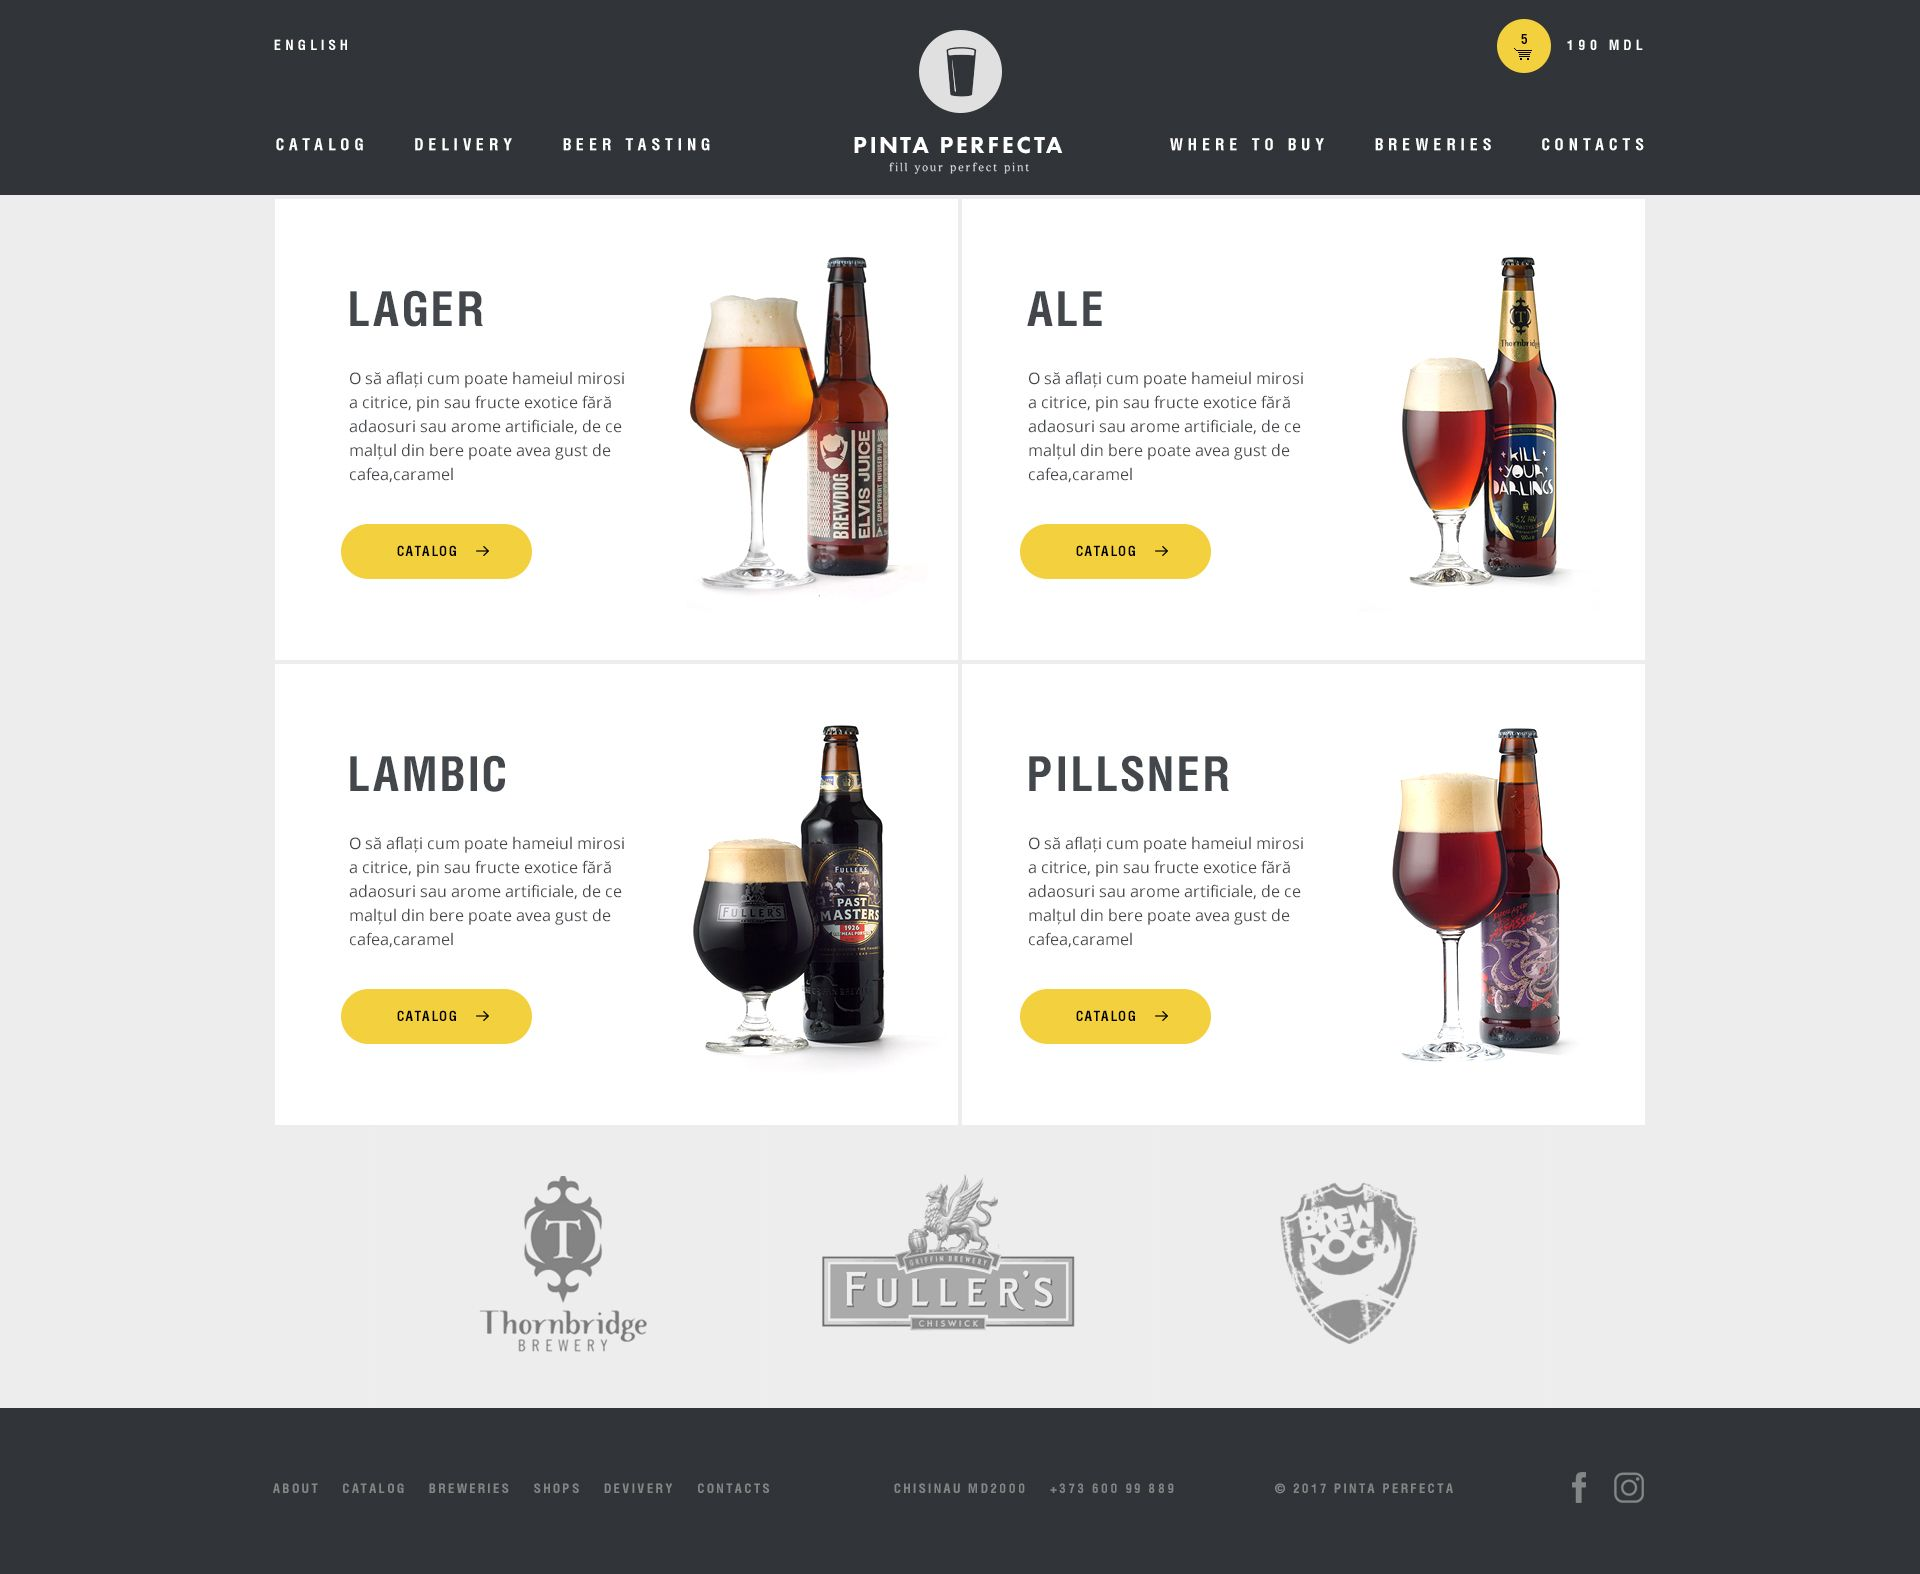 Website for the importer and distributor of beer